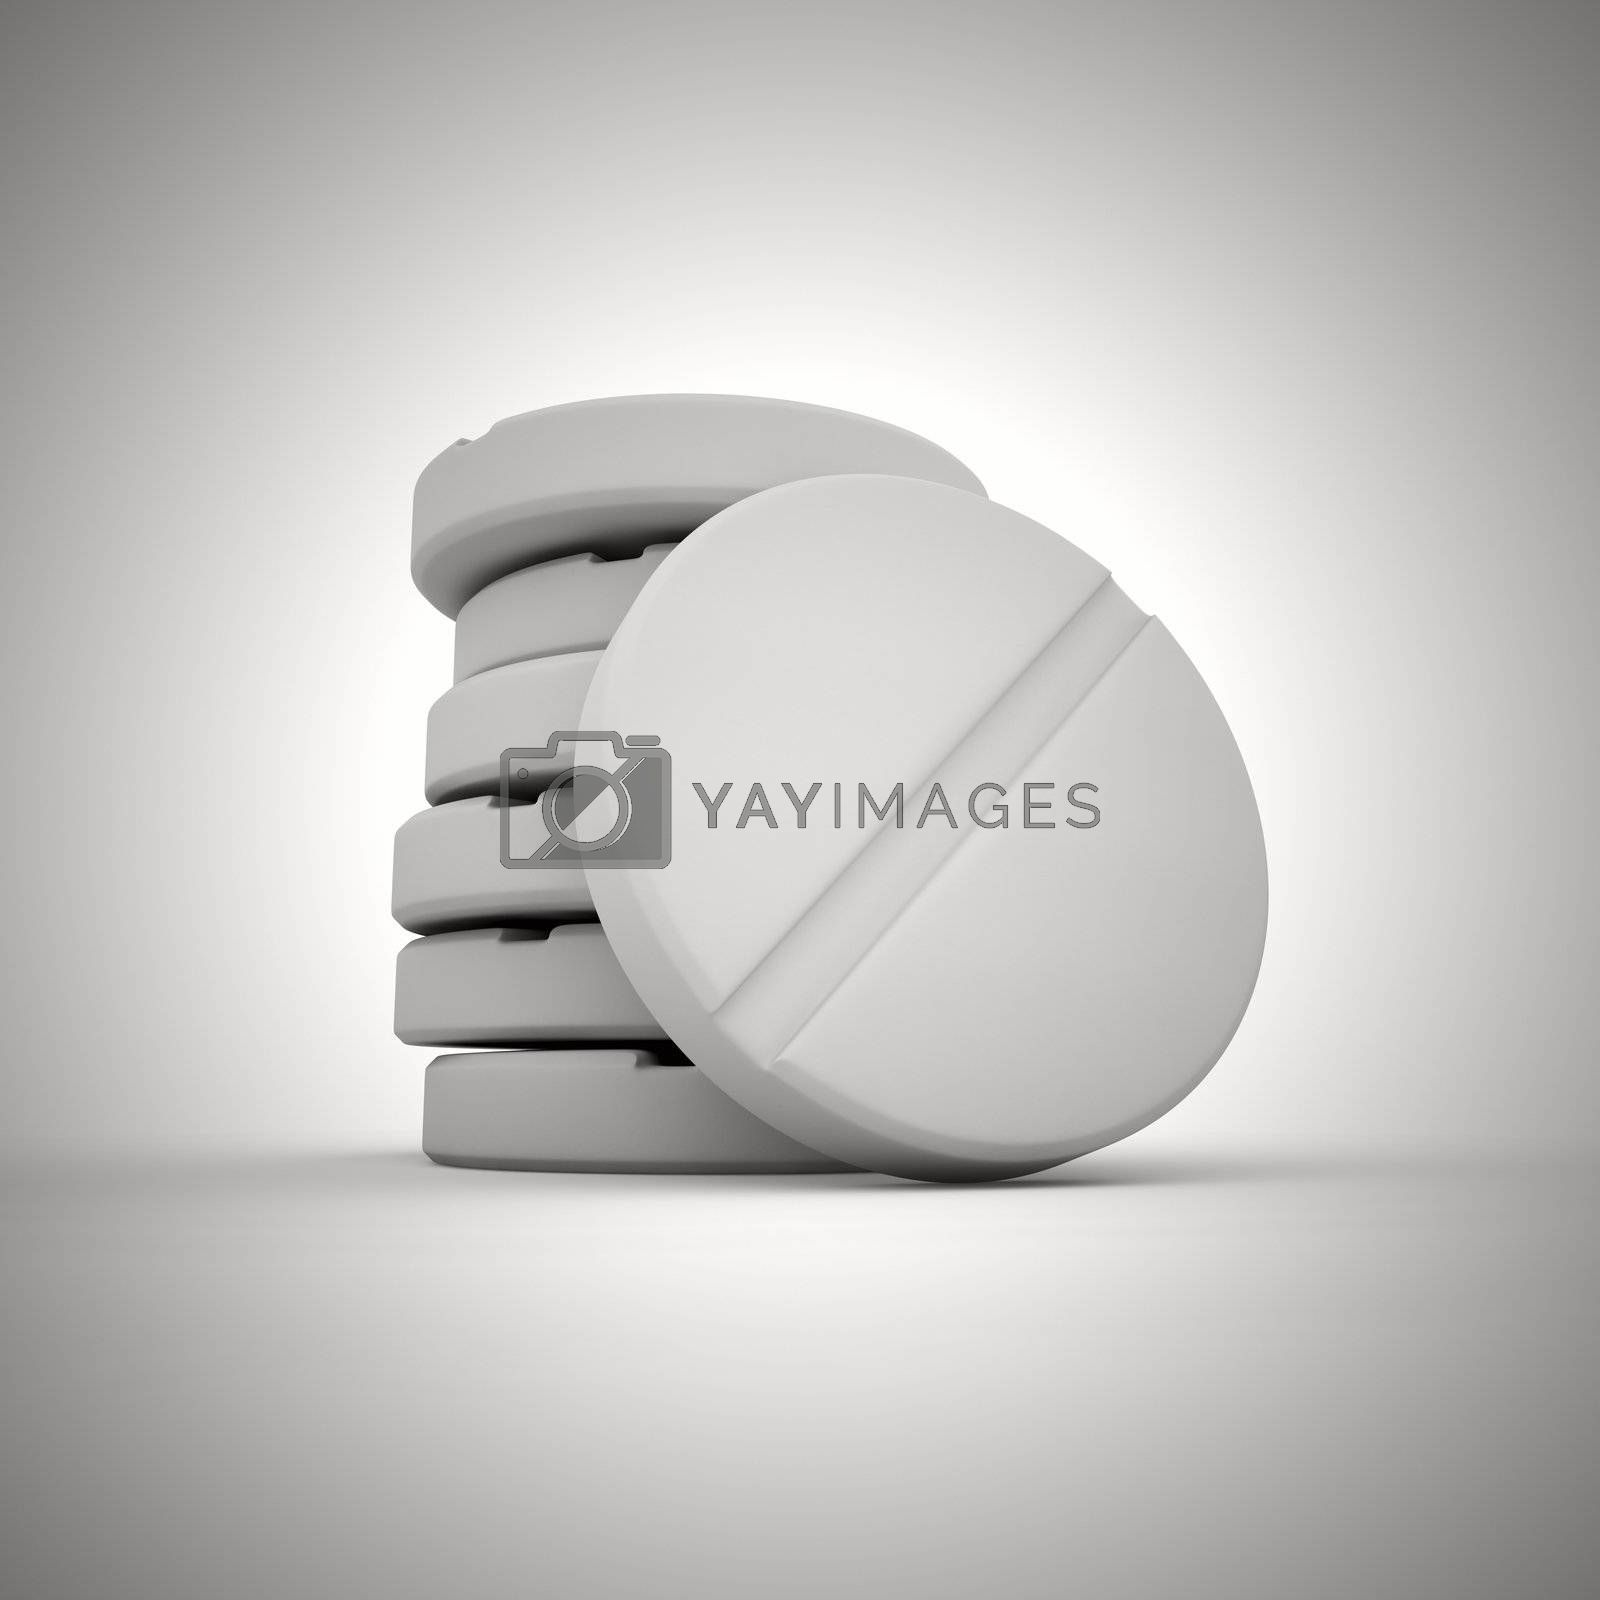 Heap of white round tablet